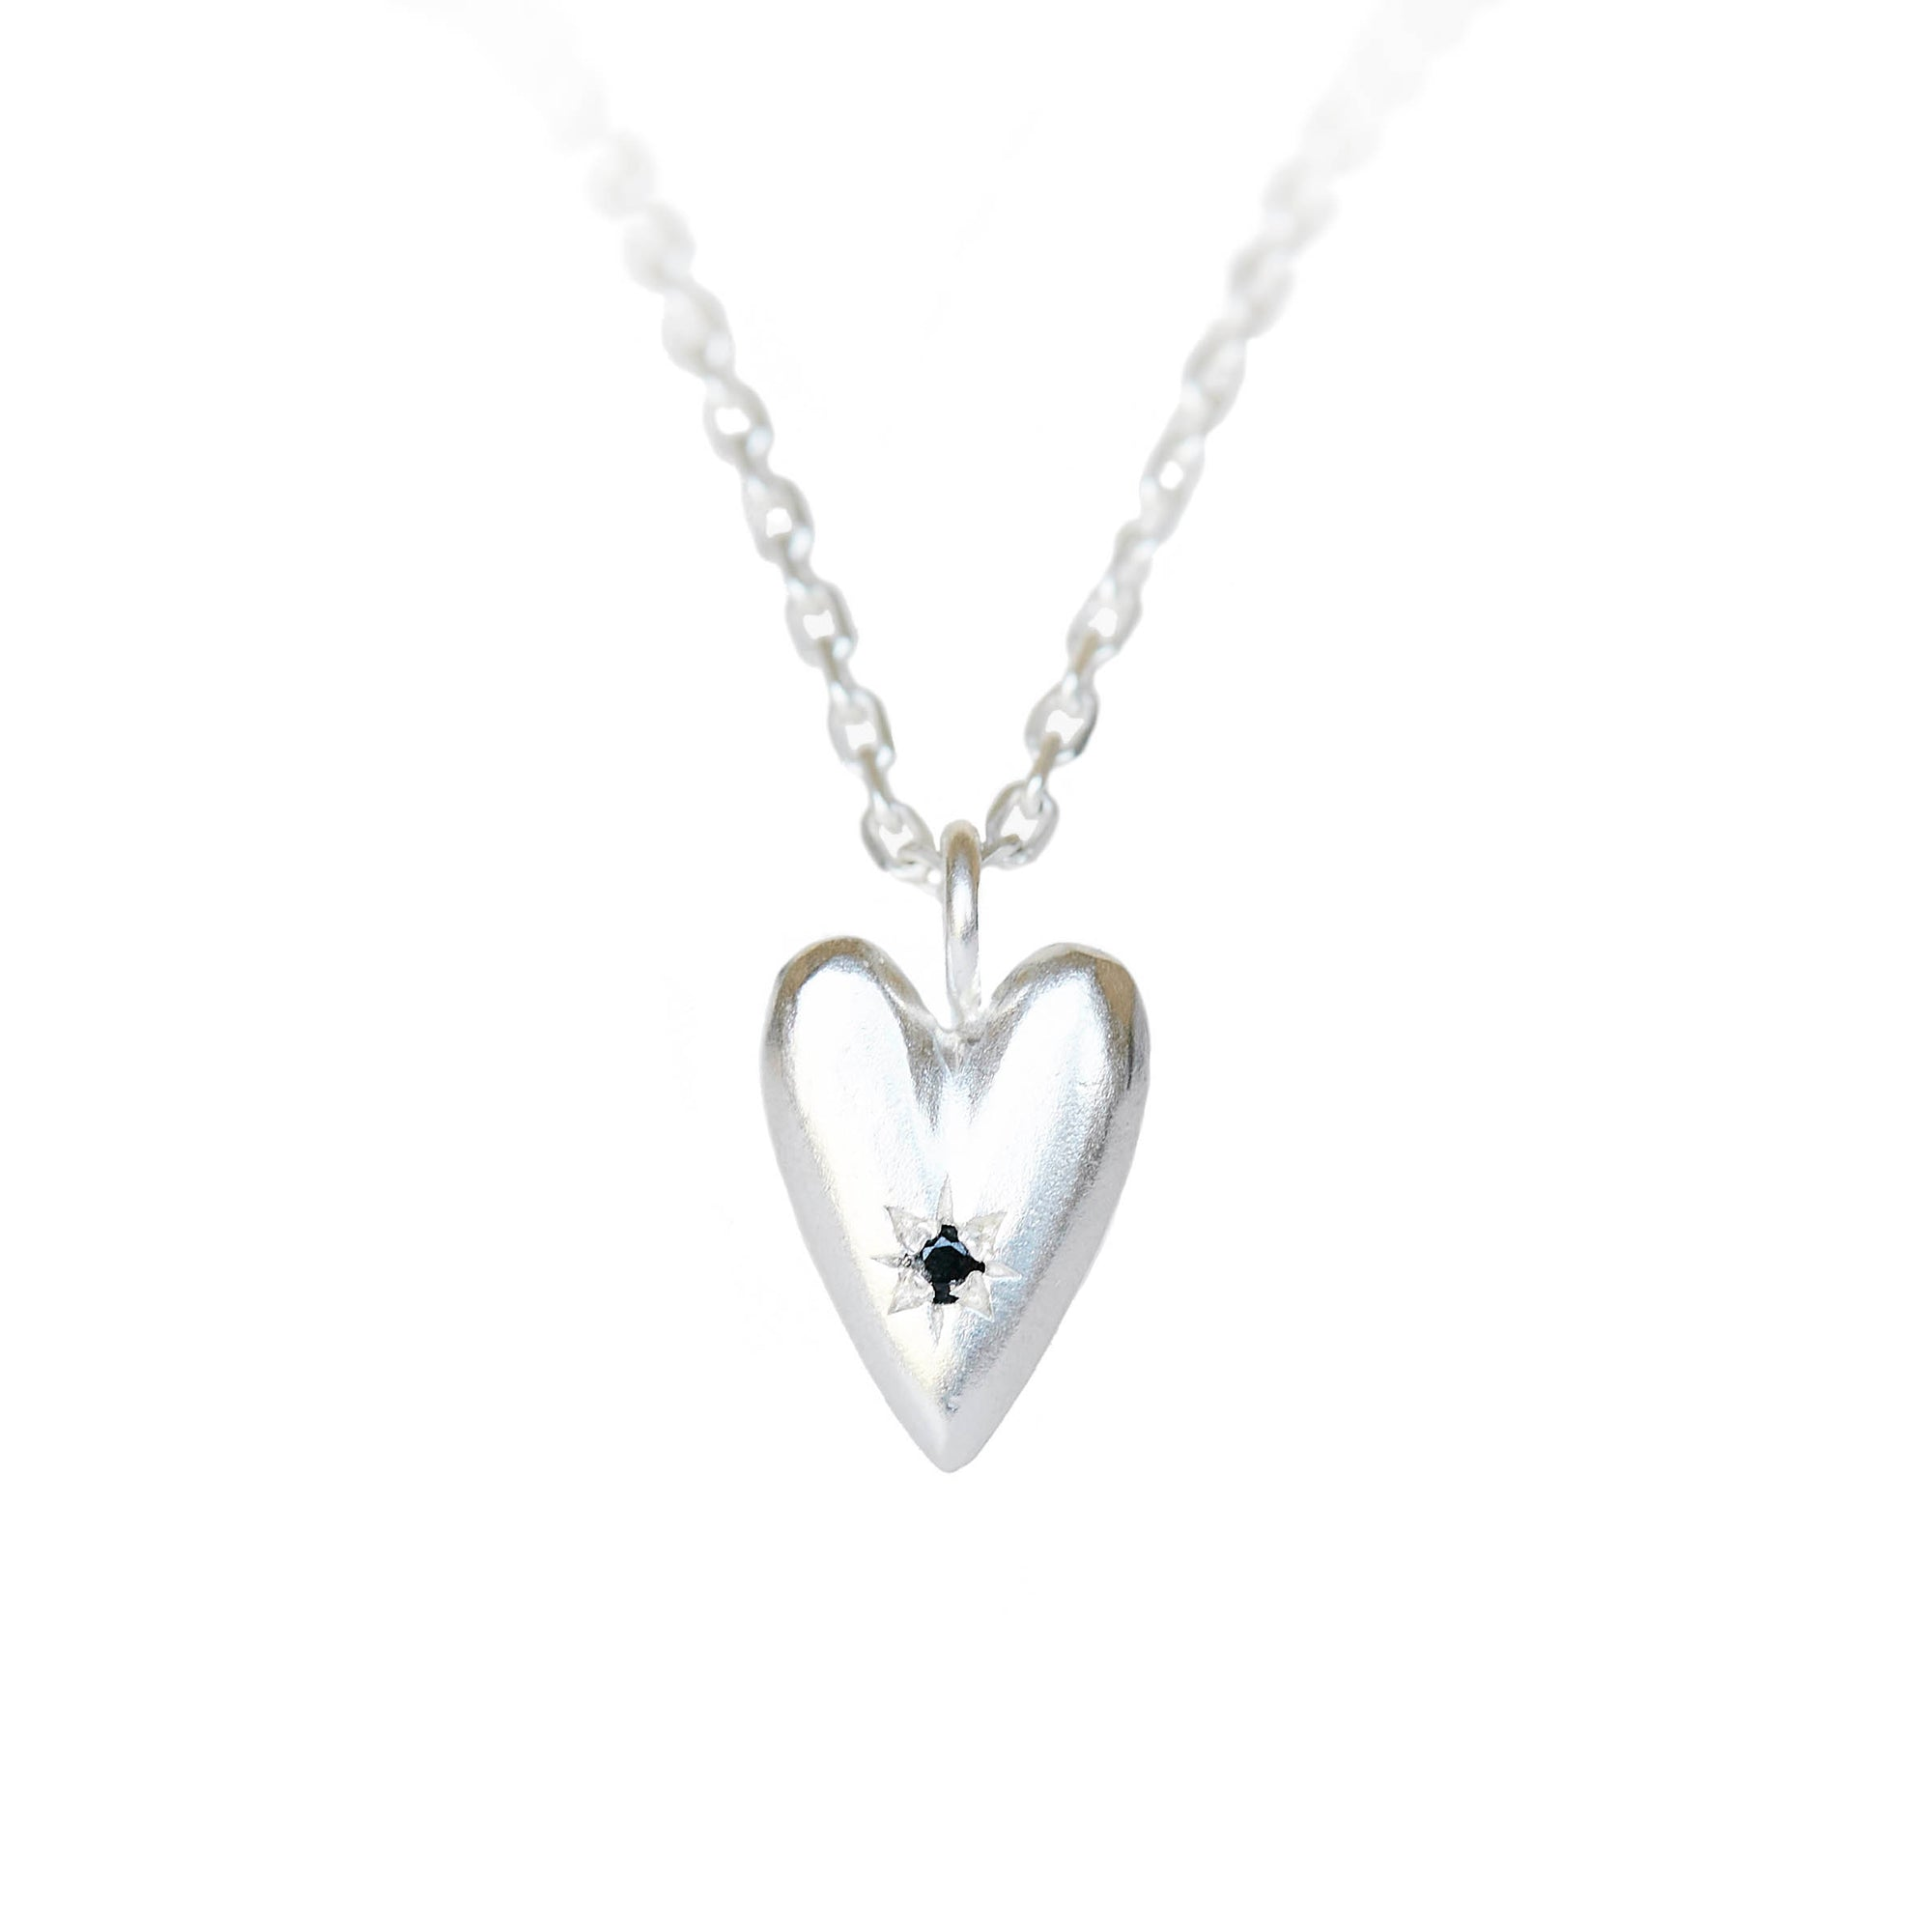 The Black Spinel Heart Pendant in Silver